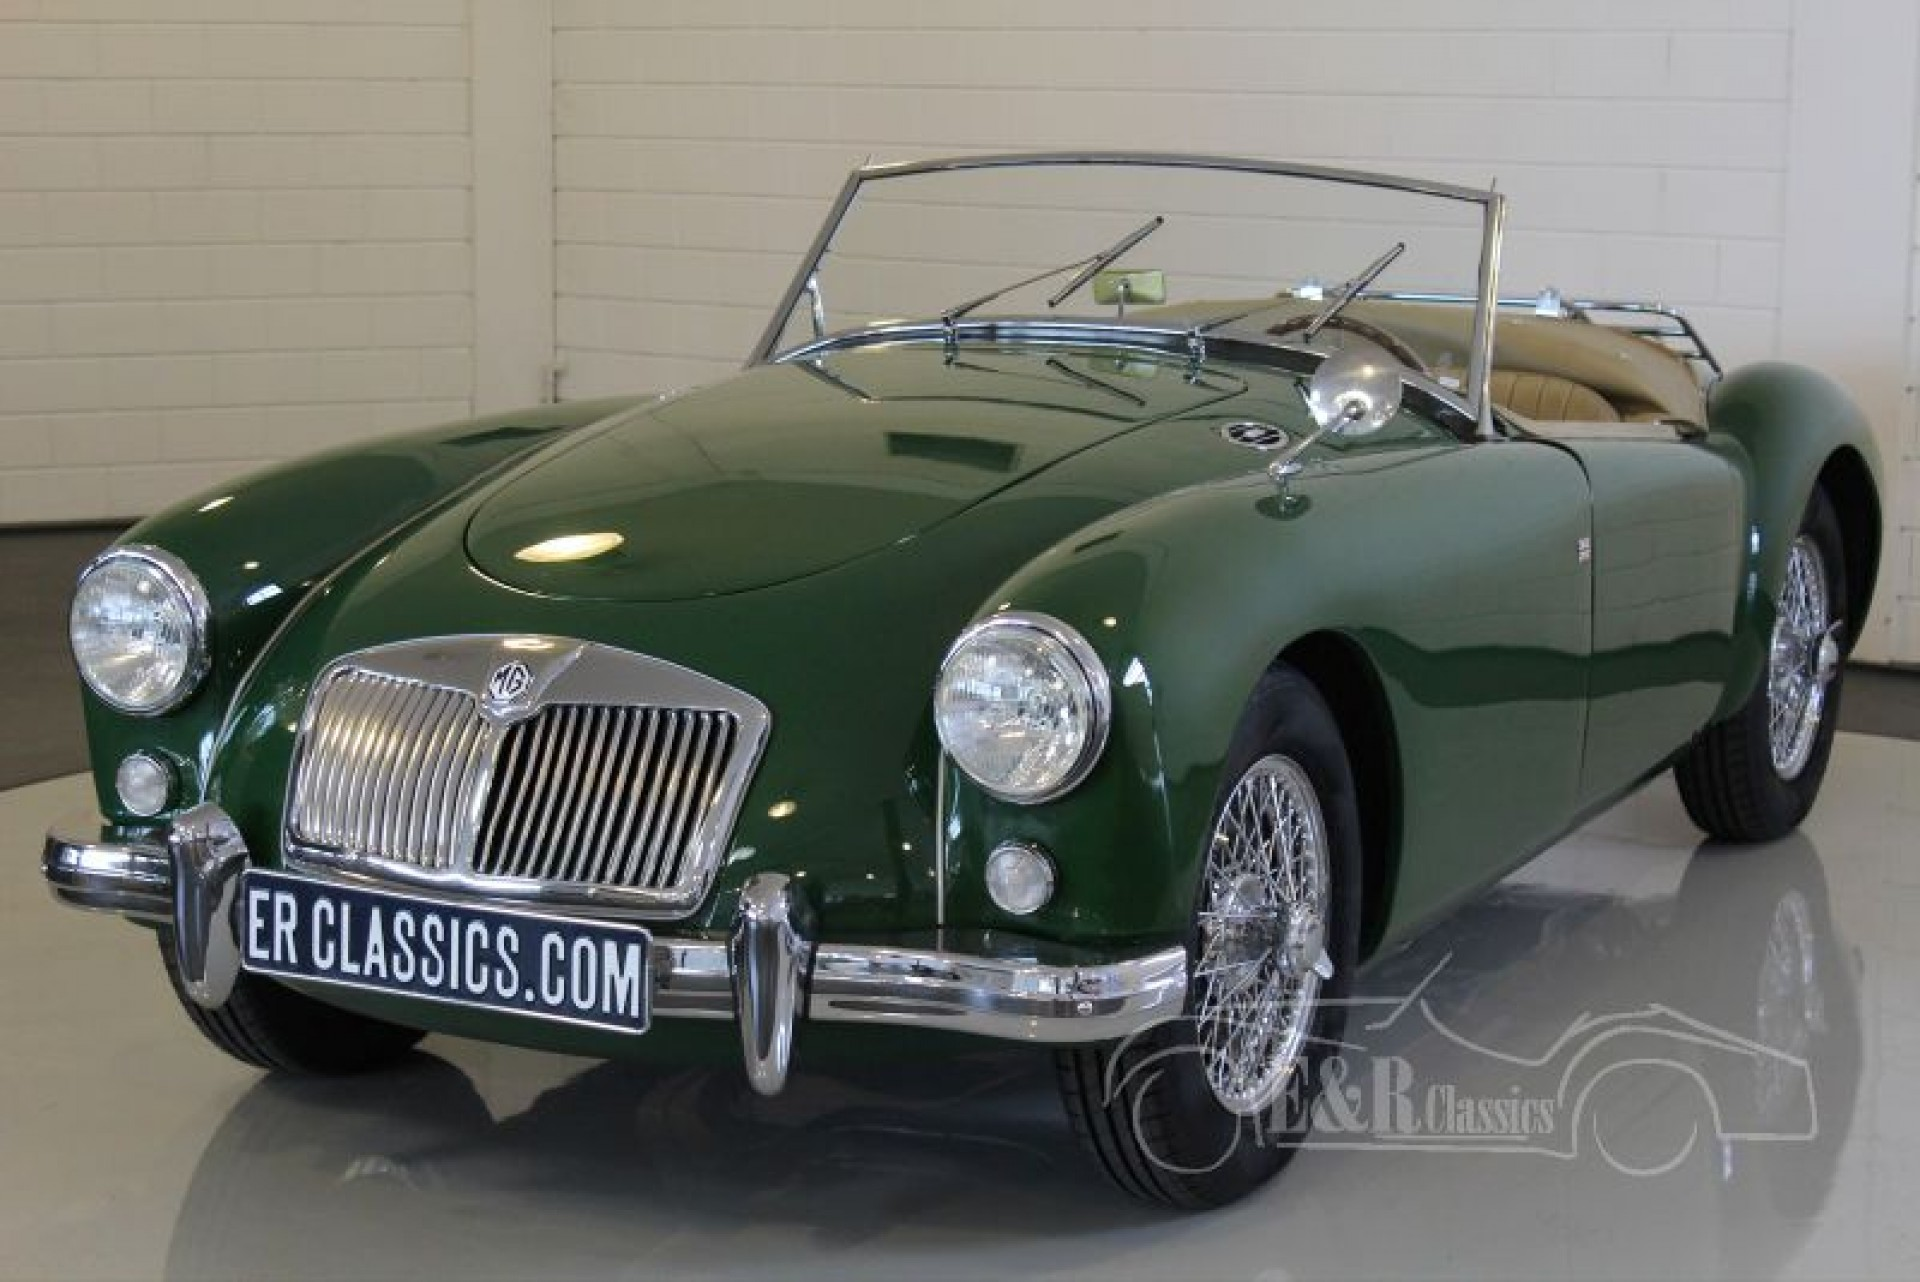 Mga Roadster 1958 For Sale At Erclassics